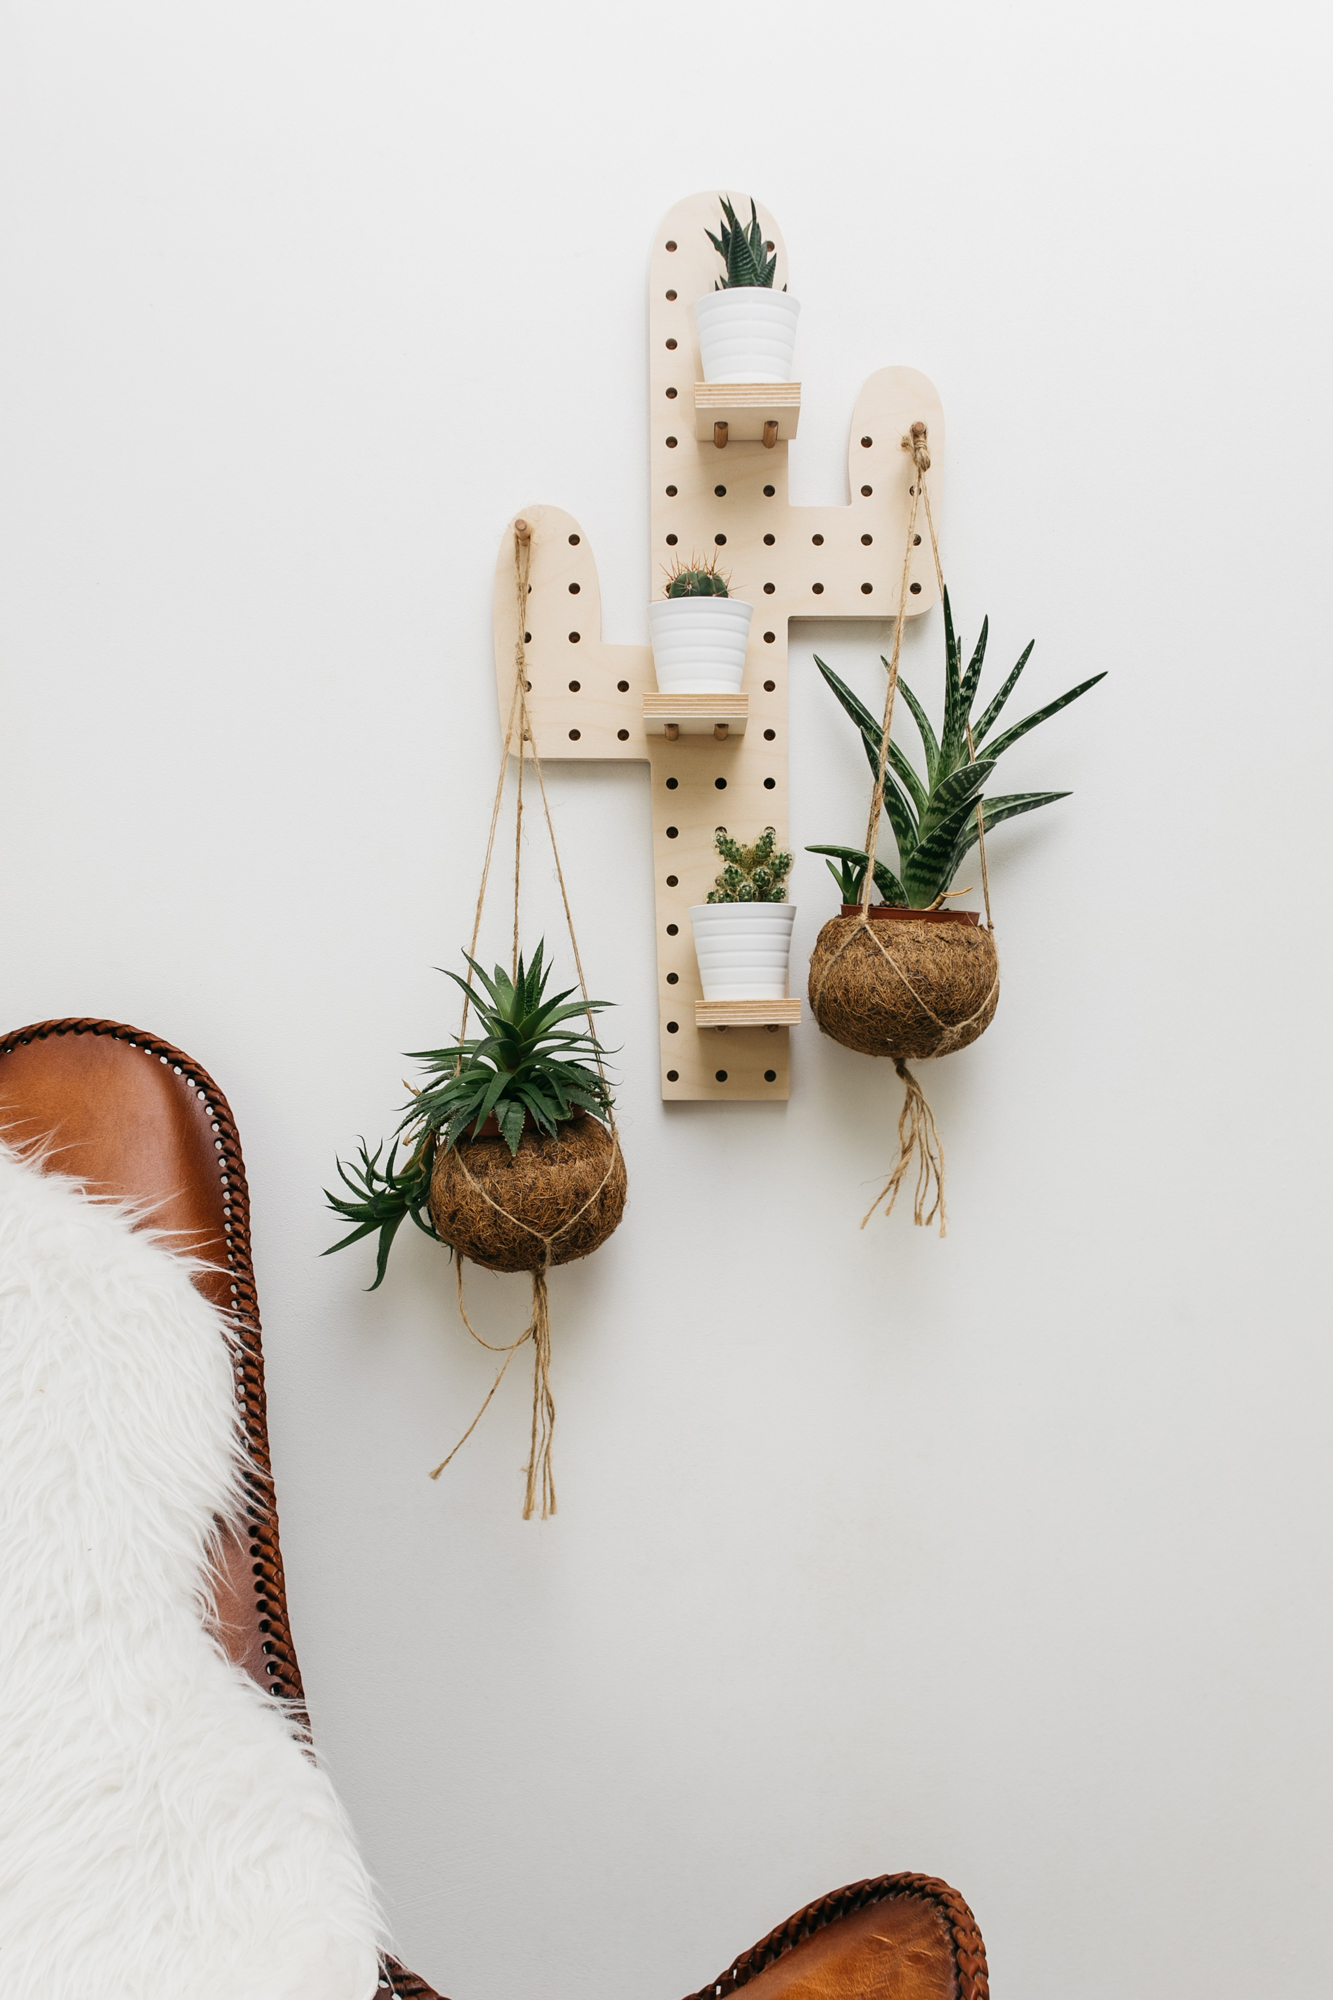 little-anana-pegboard-birchwood-panneau-perfore-bouleau-cactus